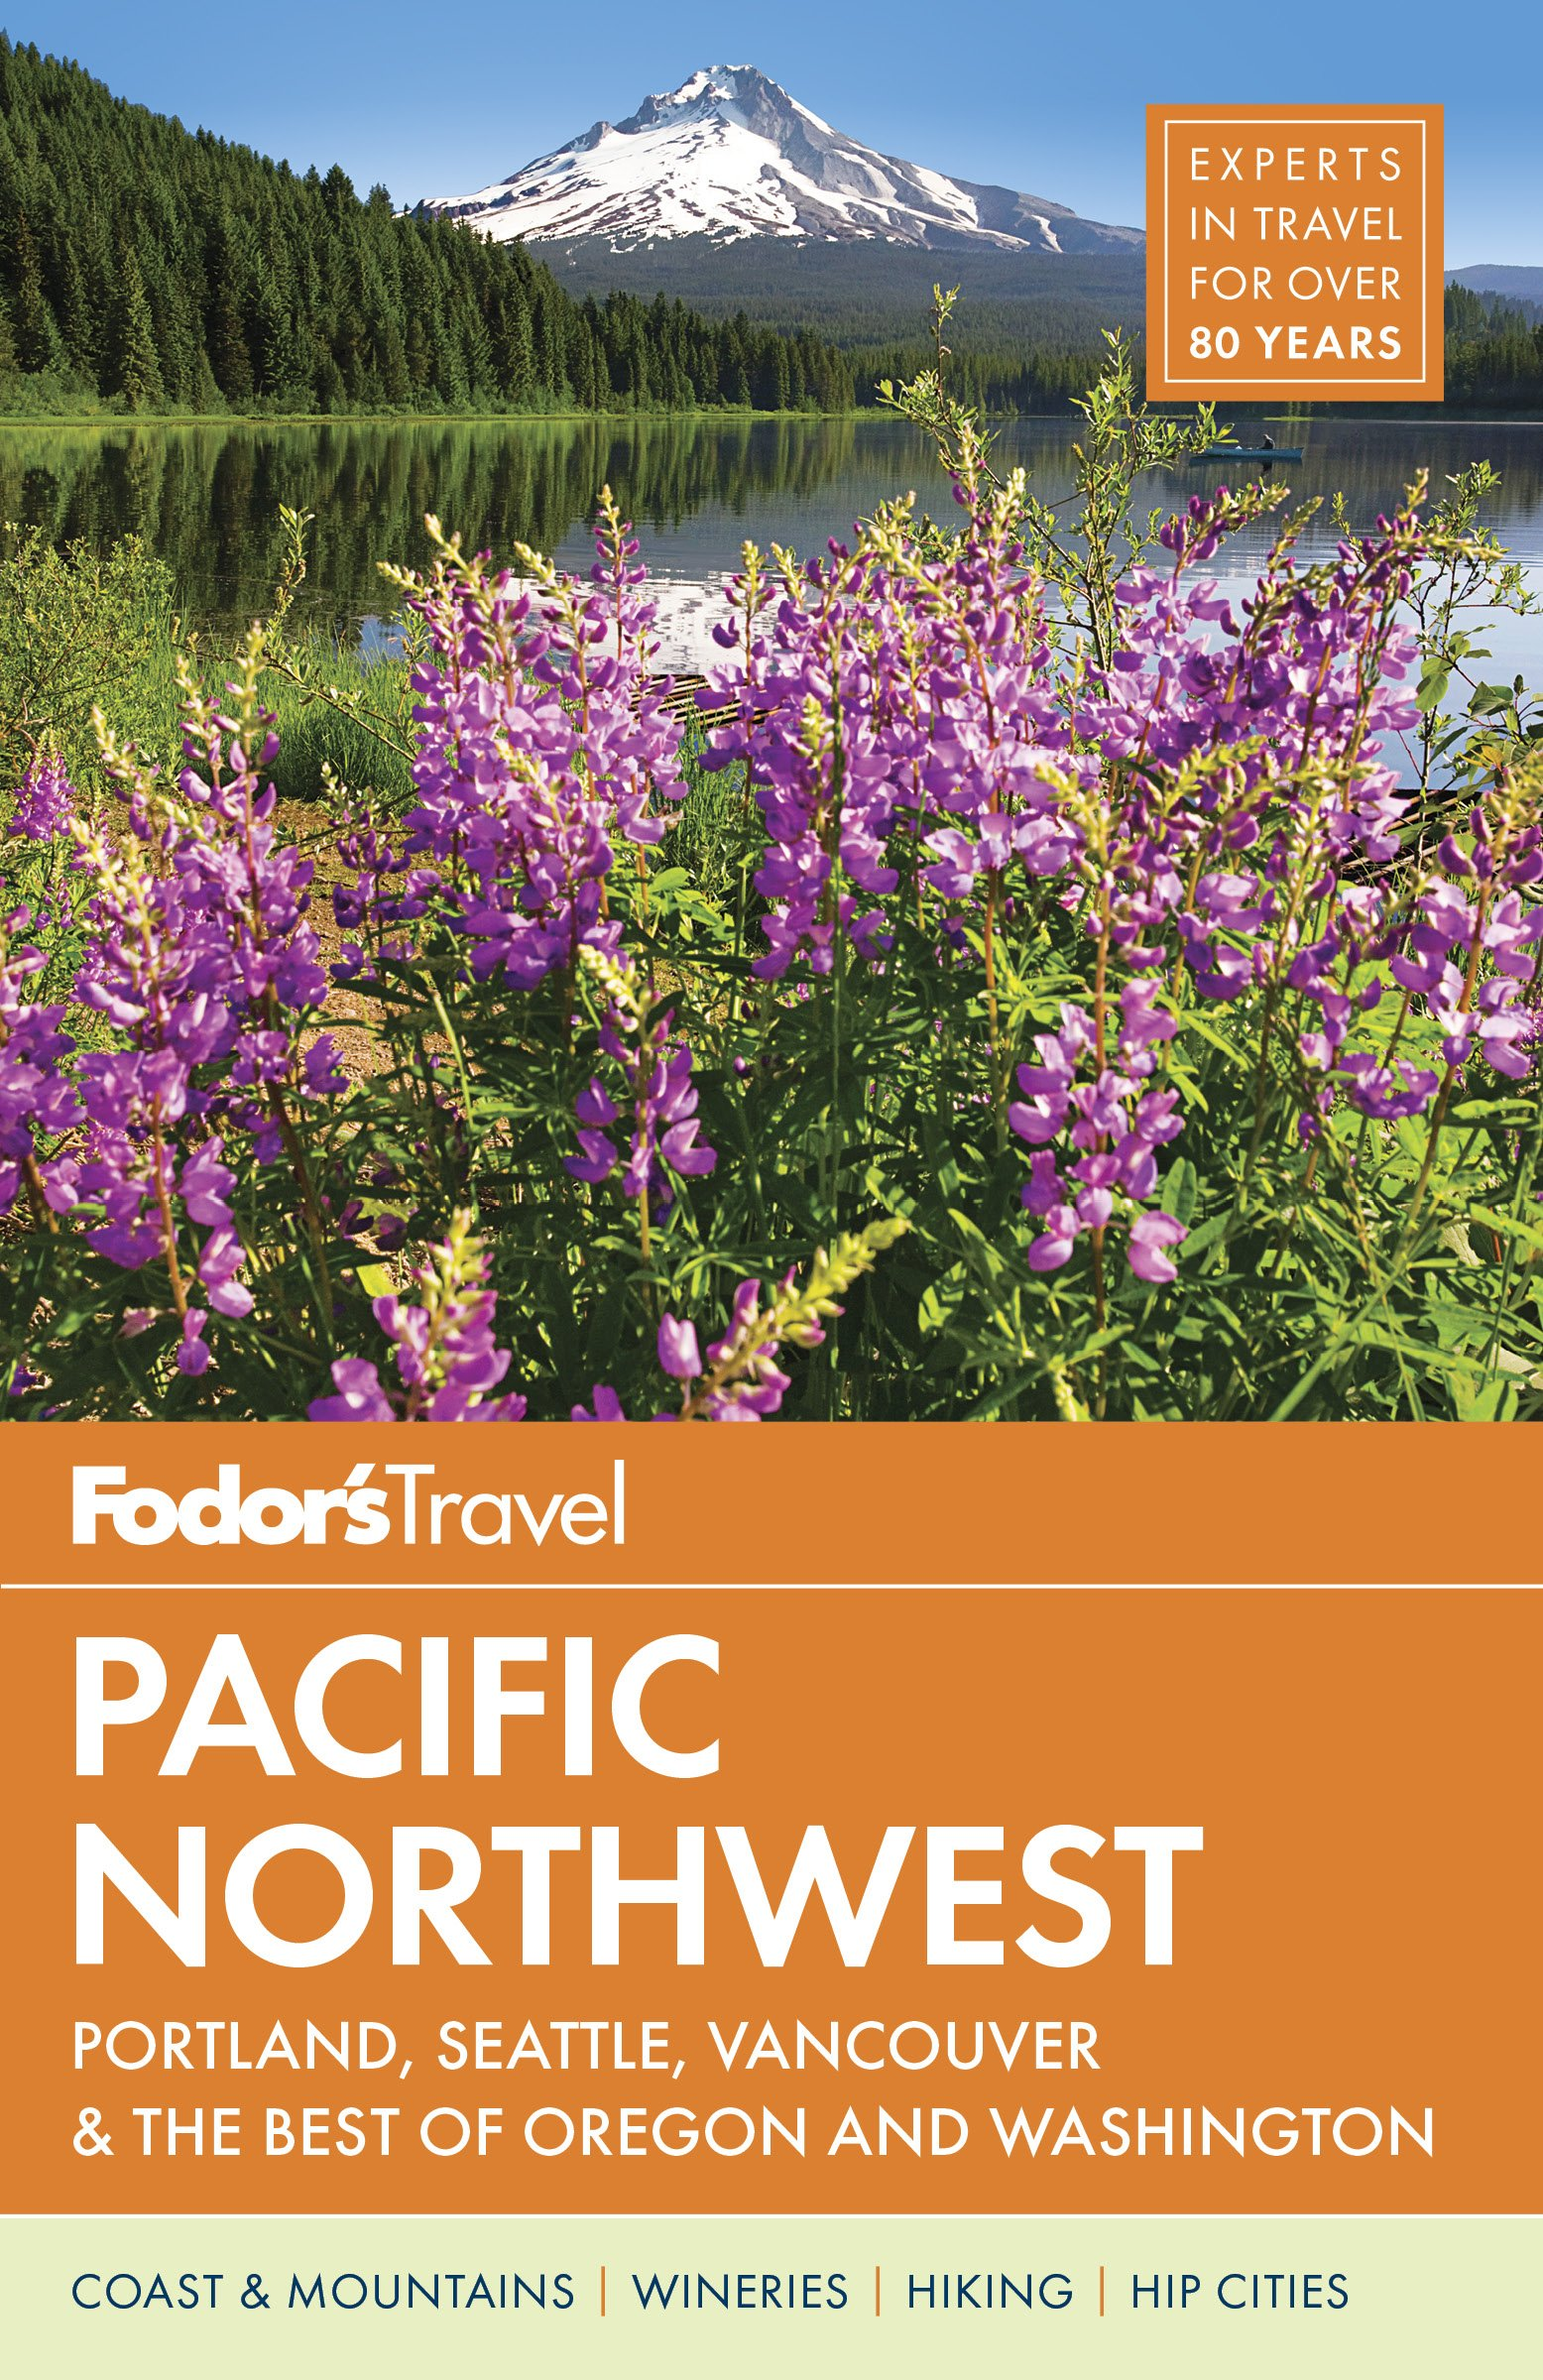 Fodor's Pacific Northwest: Portland, Seattle, Vancouver & the Best of Oregon and Washington (Full-color Travel Guide) PDF